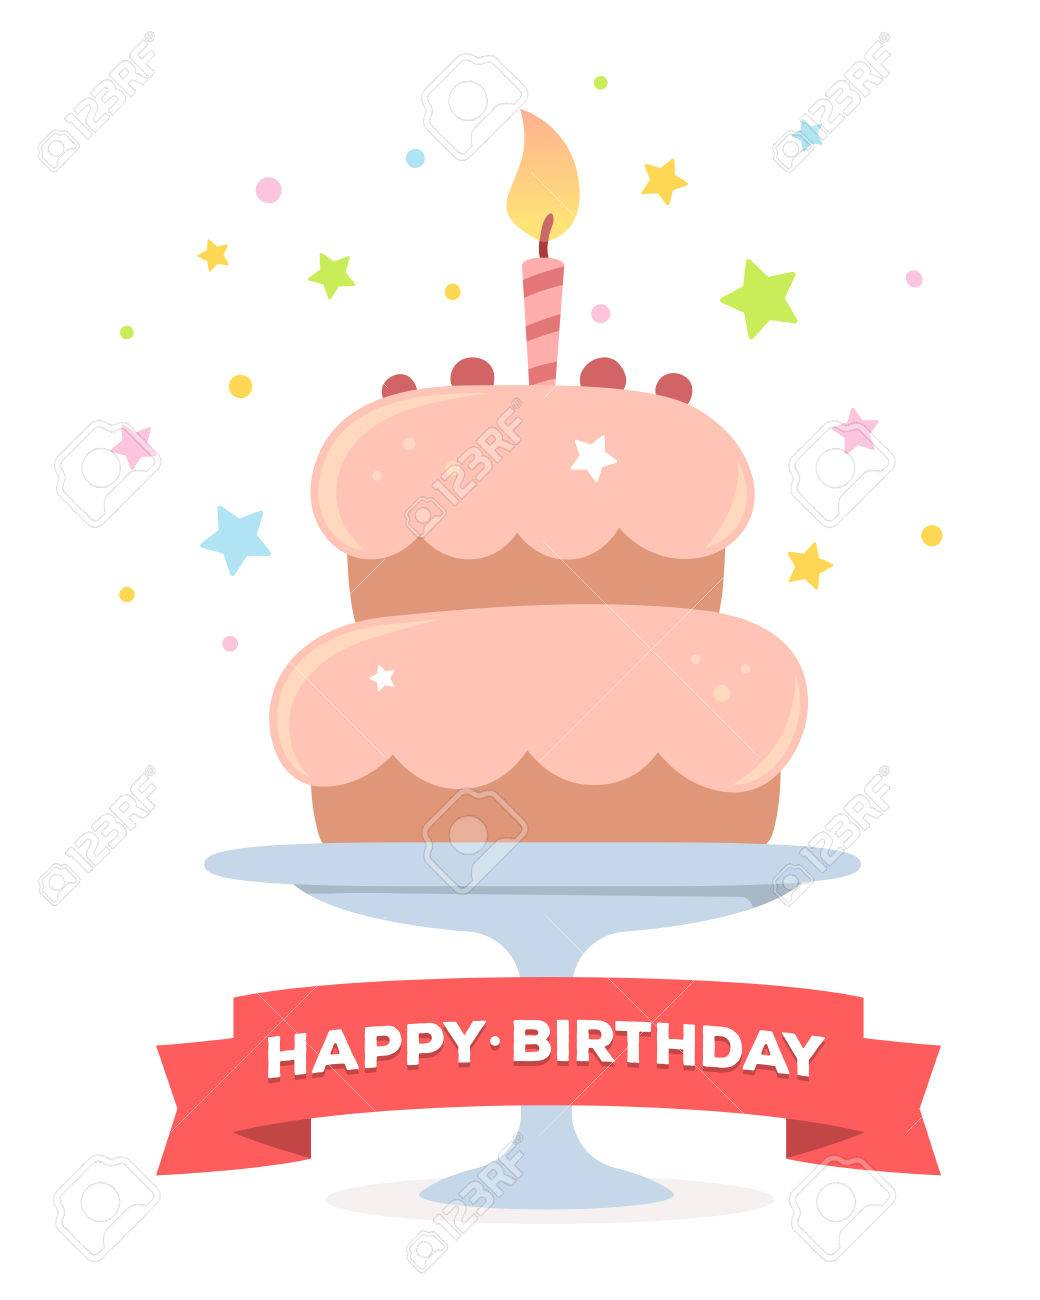 Incredible Colorful Illustration Happy Birthday Template Poster With Pink Funny Birthday Cards Online Inifofree Goldxyz